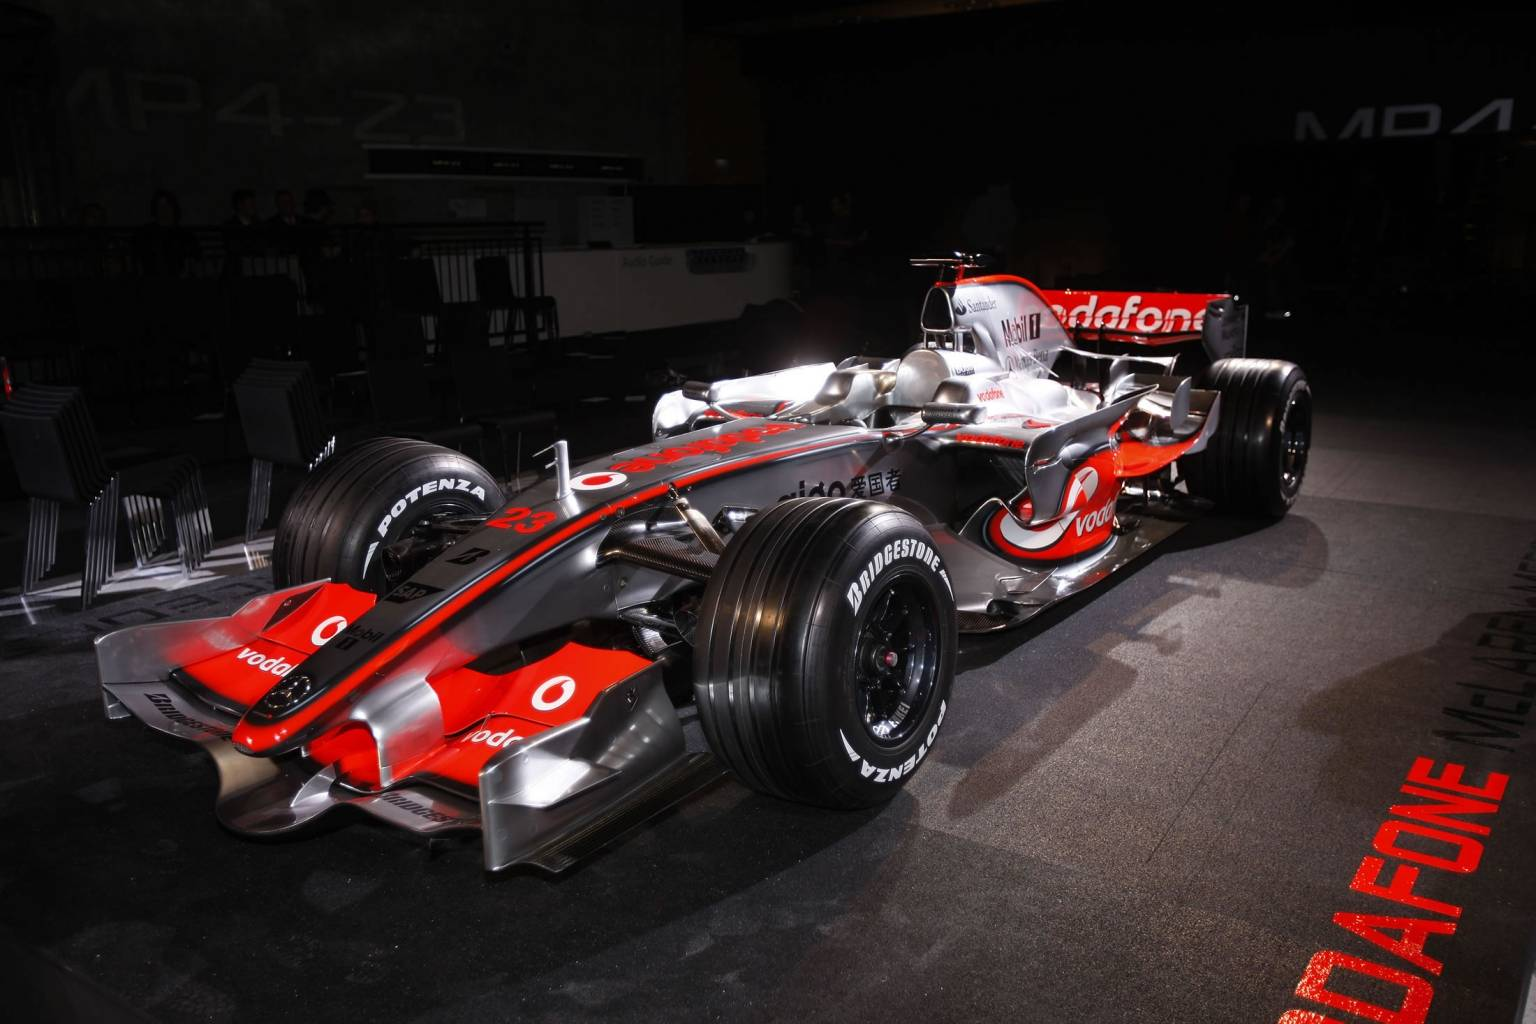 Display cars mclaren MP4-23